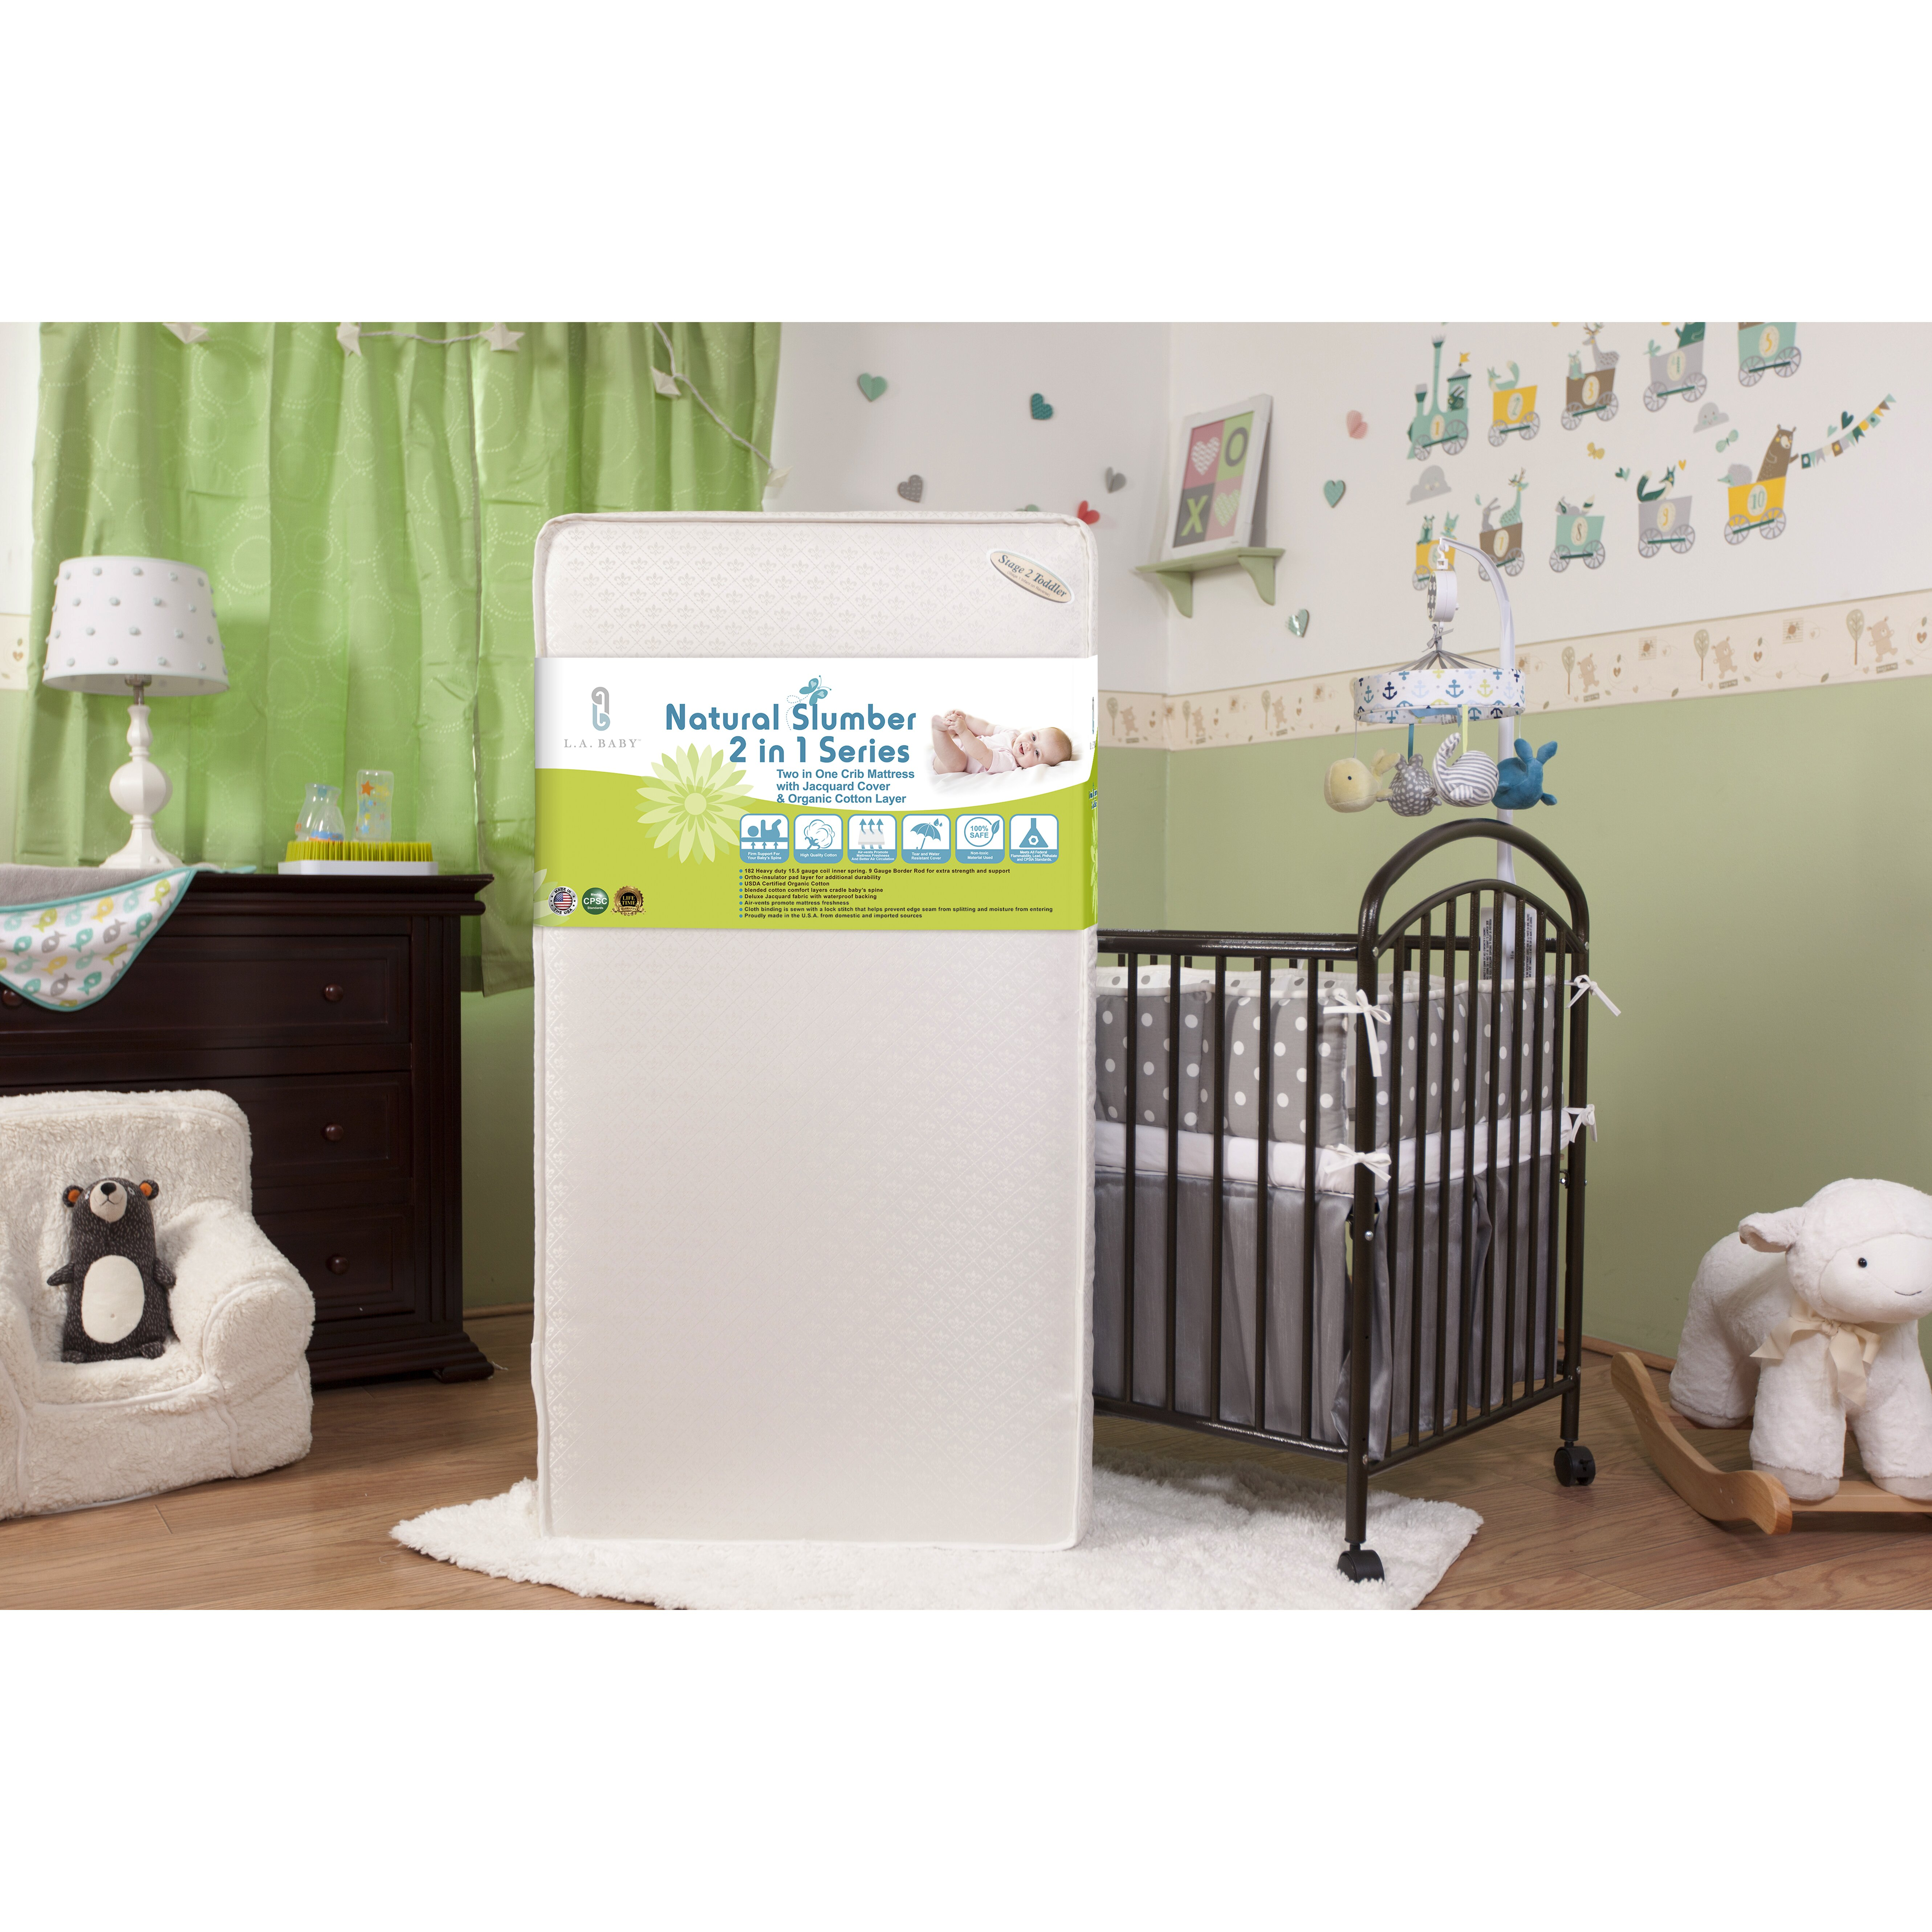 Crib for sale orlando fl - Viv Rae Trade Eugenia Two In One 5 75 Quot Crib Mattress With Jacquard Cover Amp